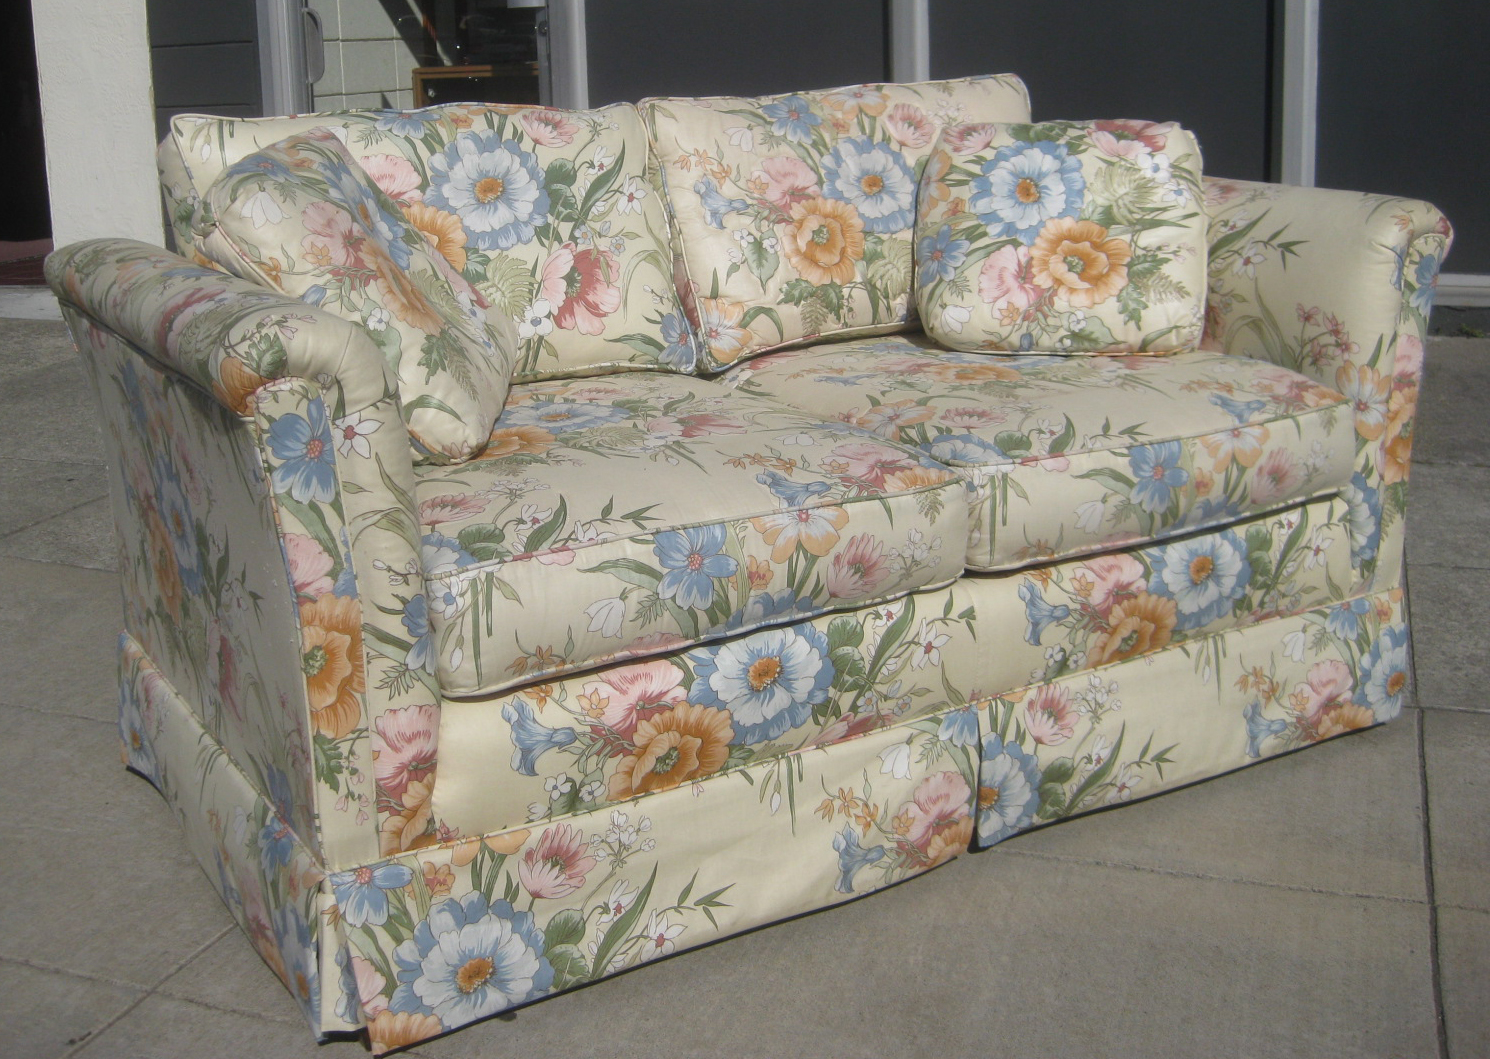 Uhuru Furniture & Collectibles Sold  Floral Loveseat  $40